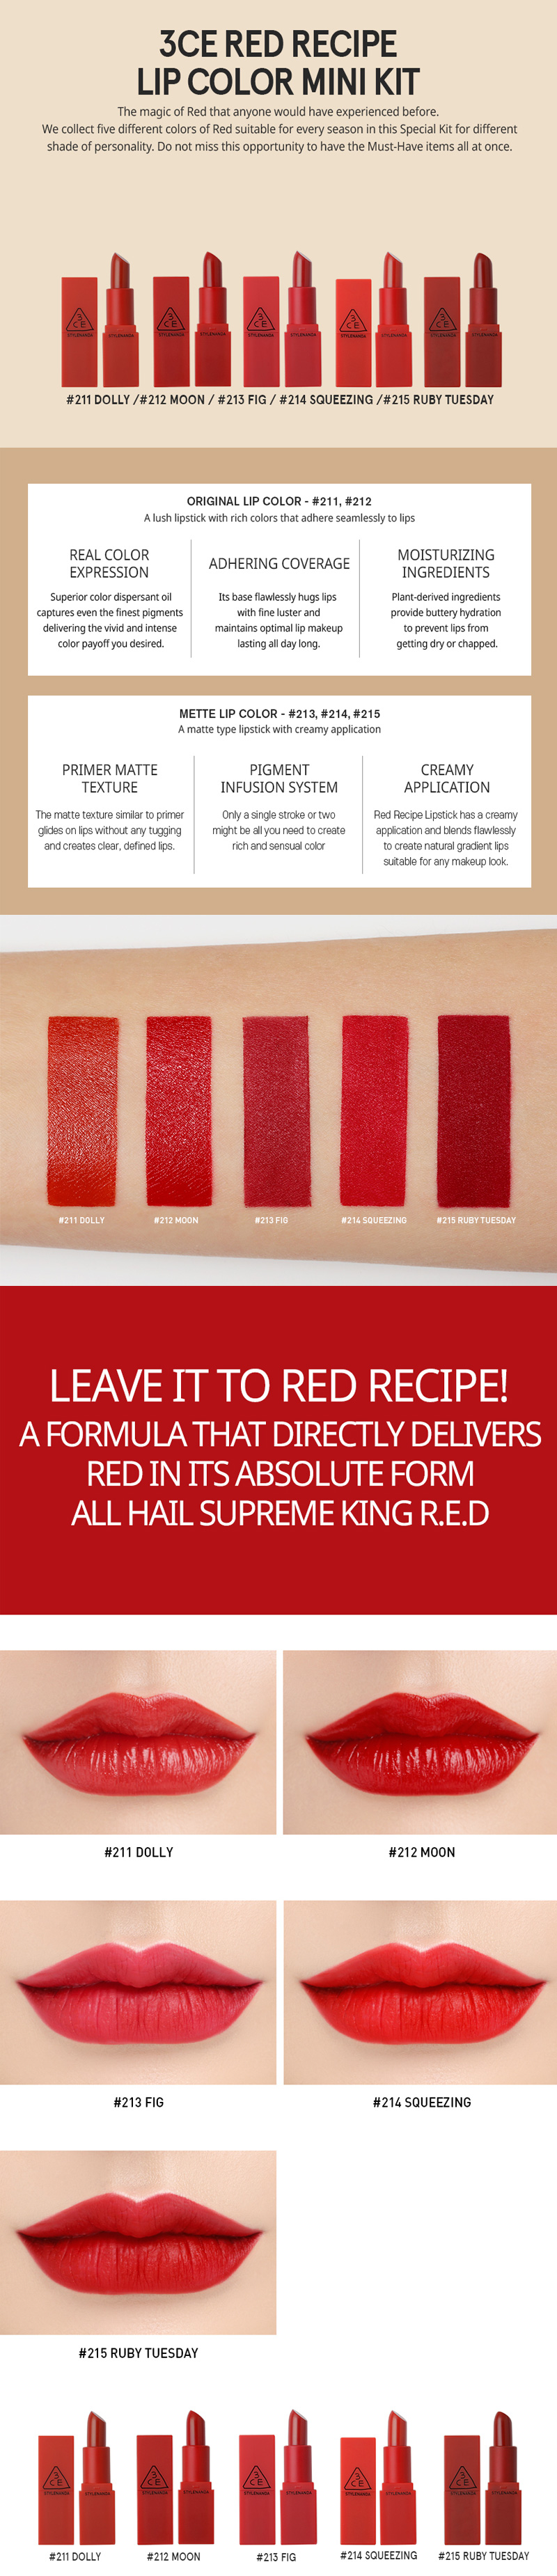 3ce Red Recipe Lip Color Mini Kit Korean Makeup Lipstick 7b442fc70179c8d462468a5f04ecb14f 1497494